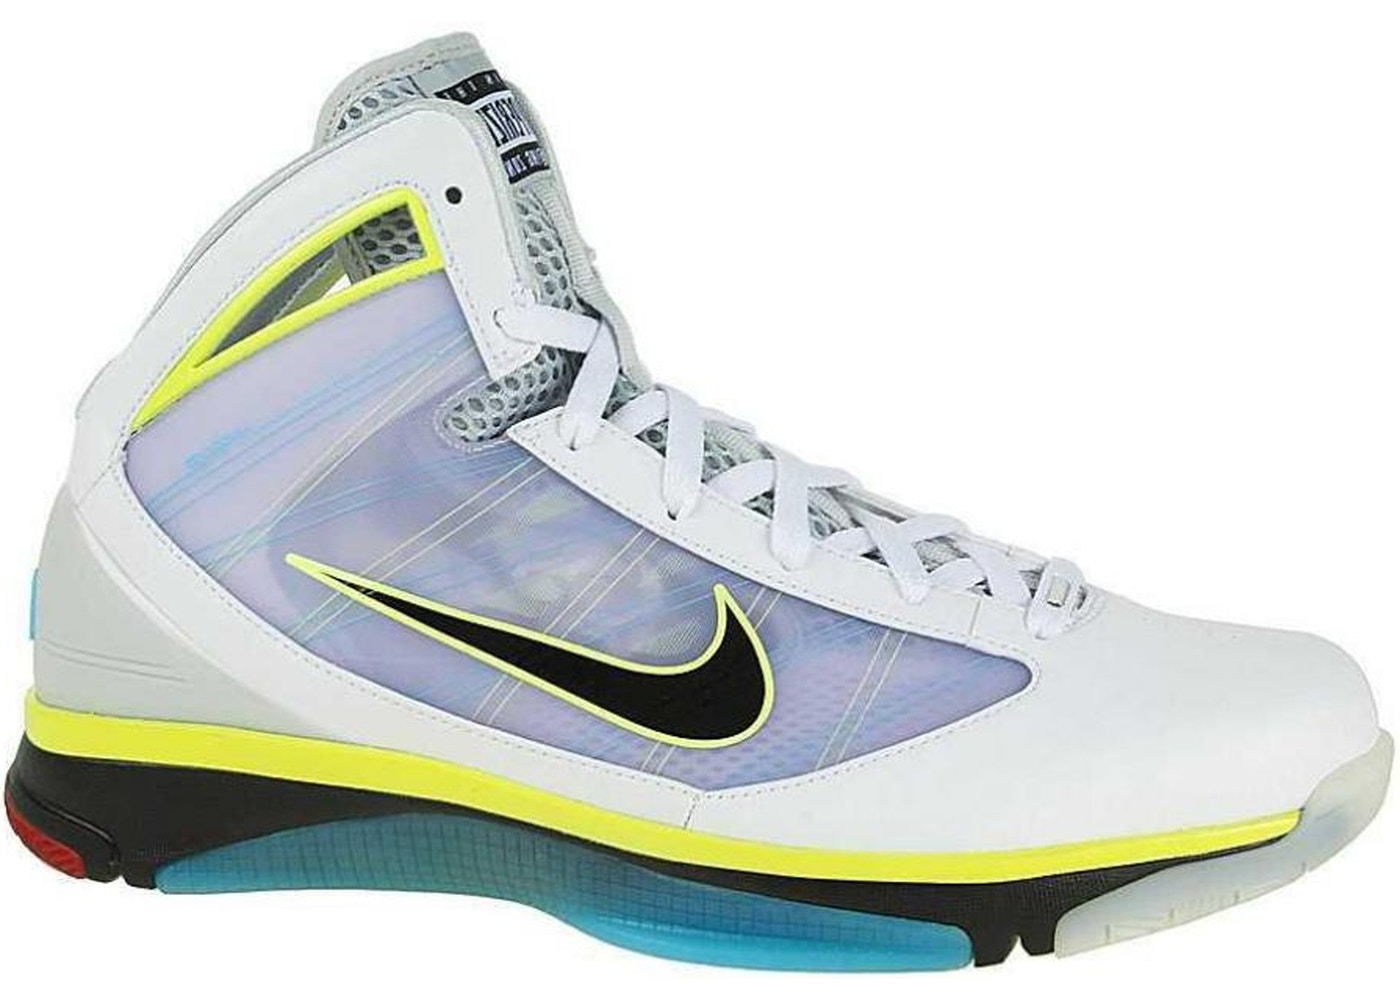 71fb83bc561769 Nike Hyperize White Men Can t Jump (Billy Hoyle) - 367173-101